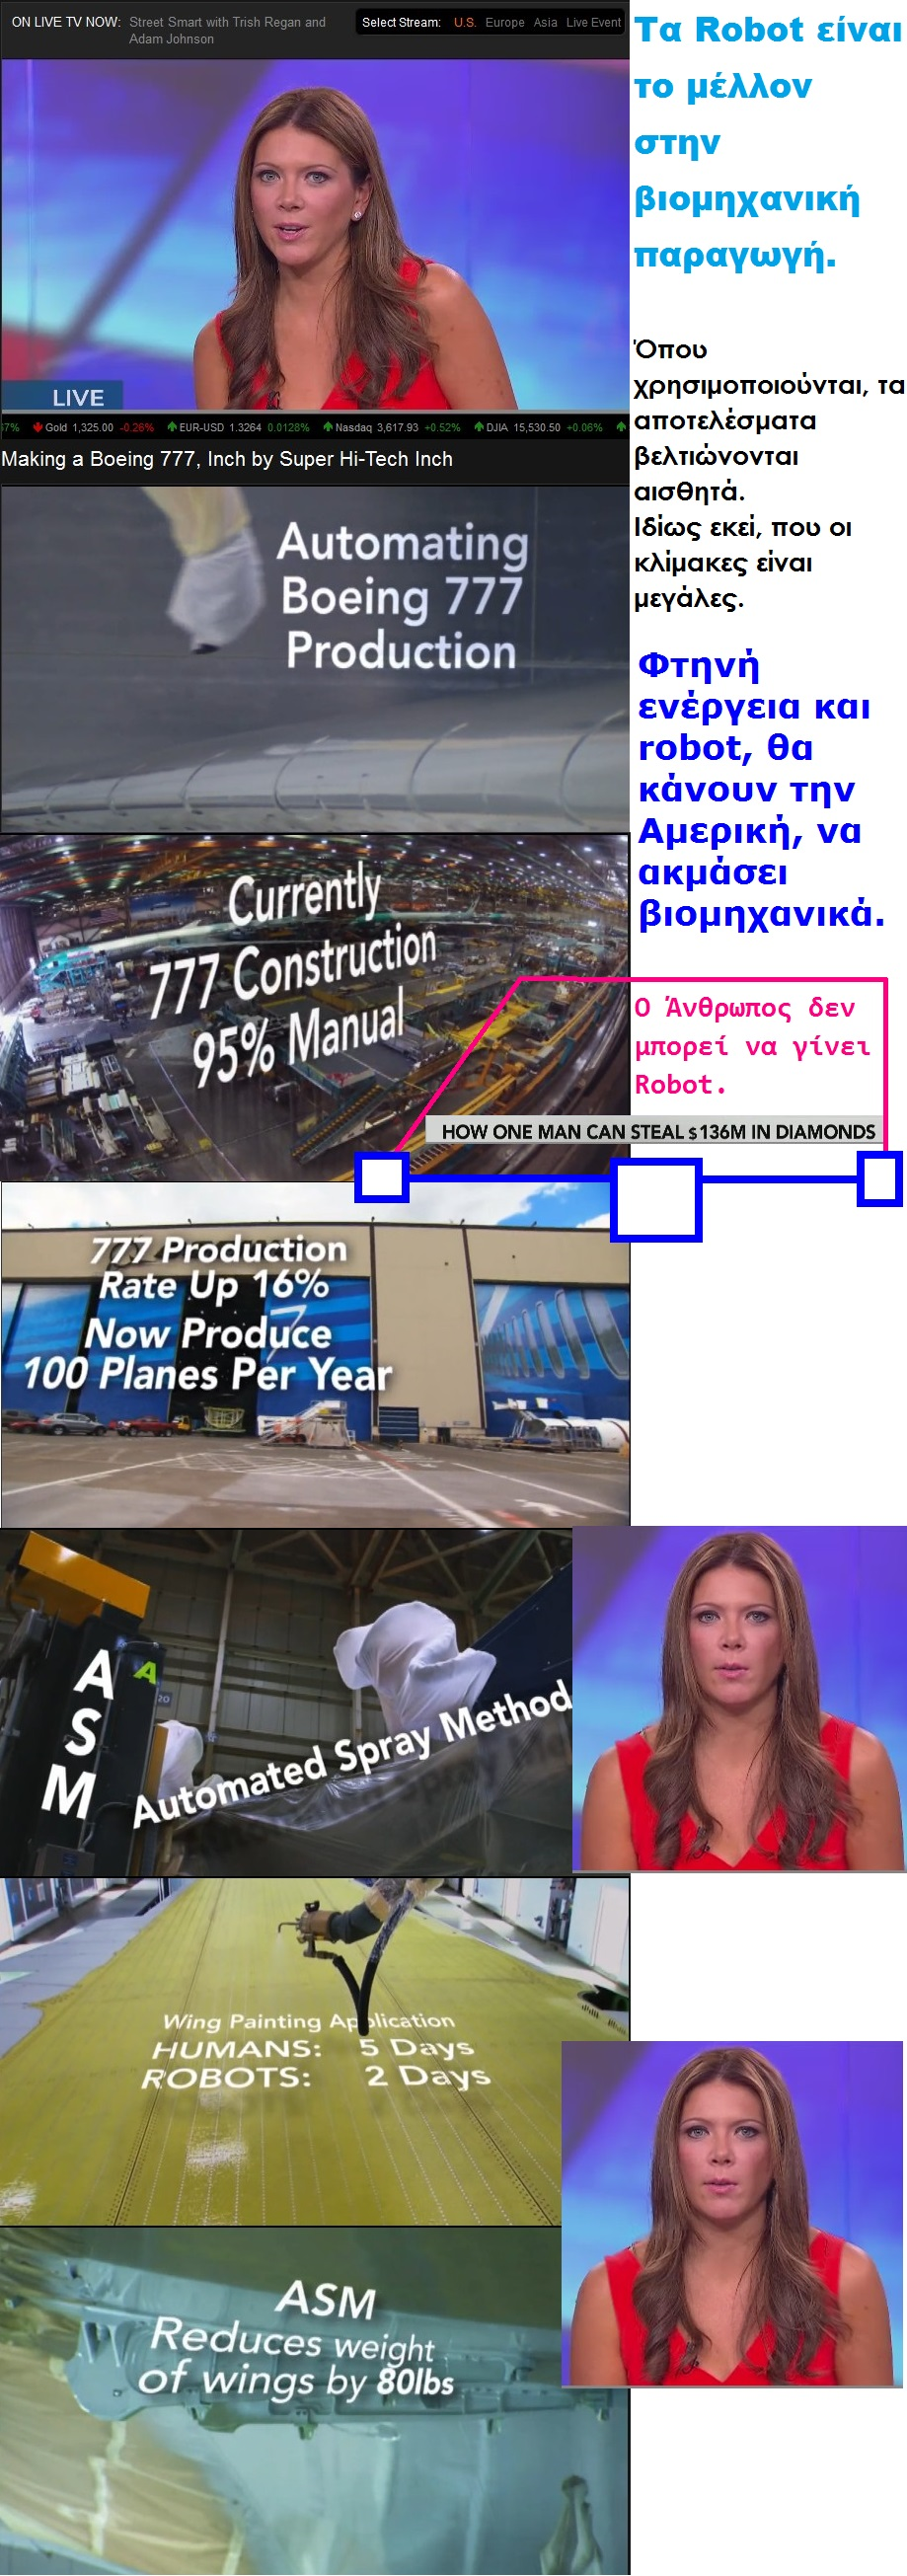 BLOOMBERG BOEING 777 PRODUCTION 01 310713